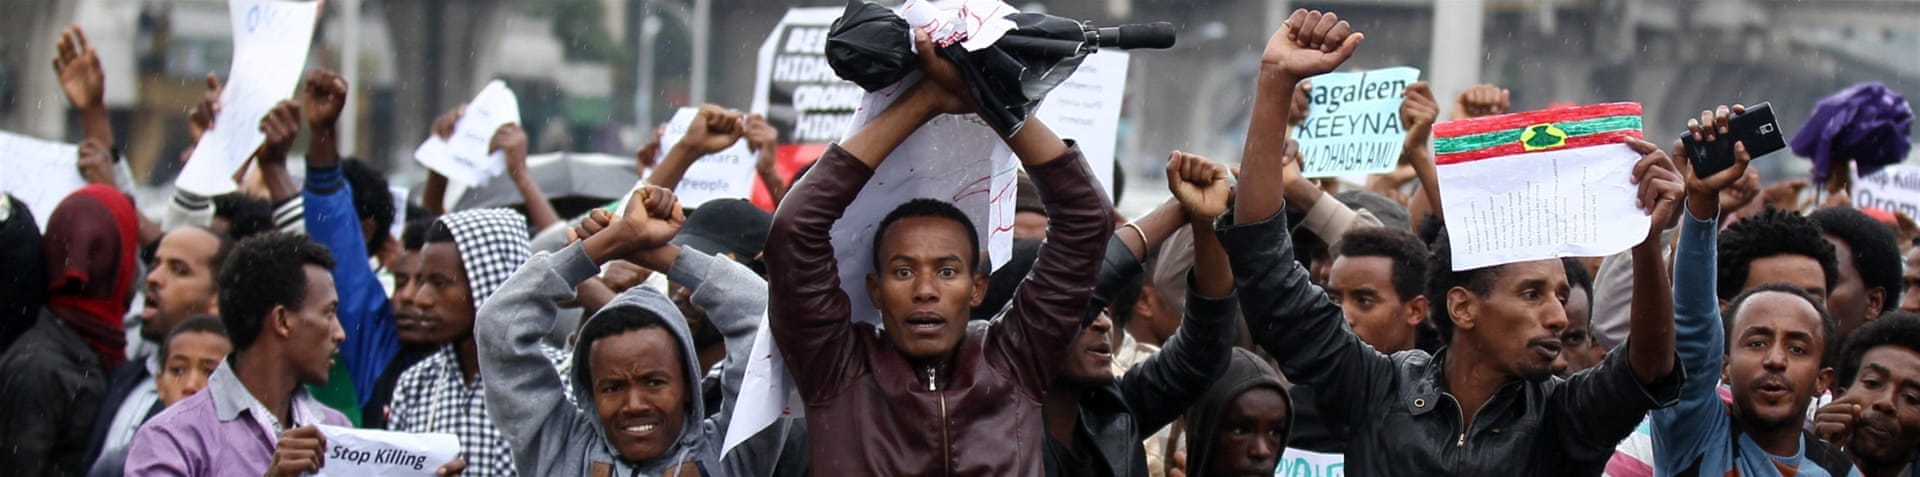 Oromo and Amhara demonstrators are calling for more rights. [EPA]